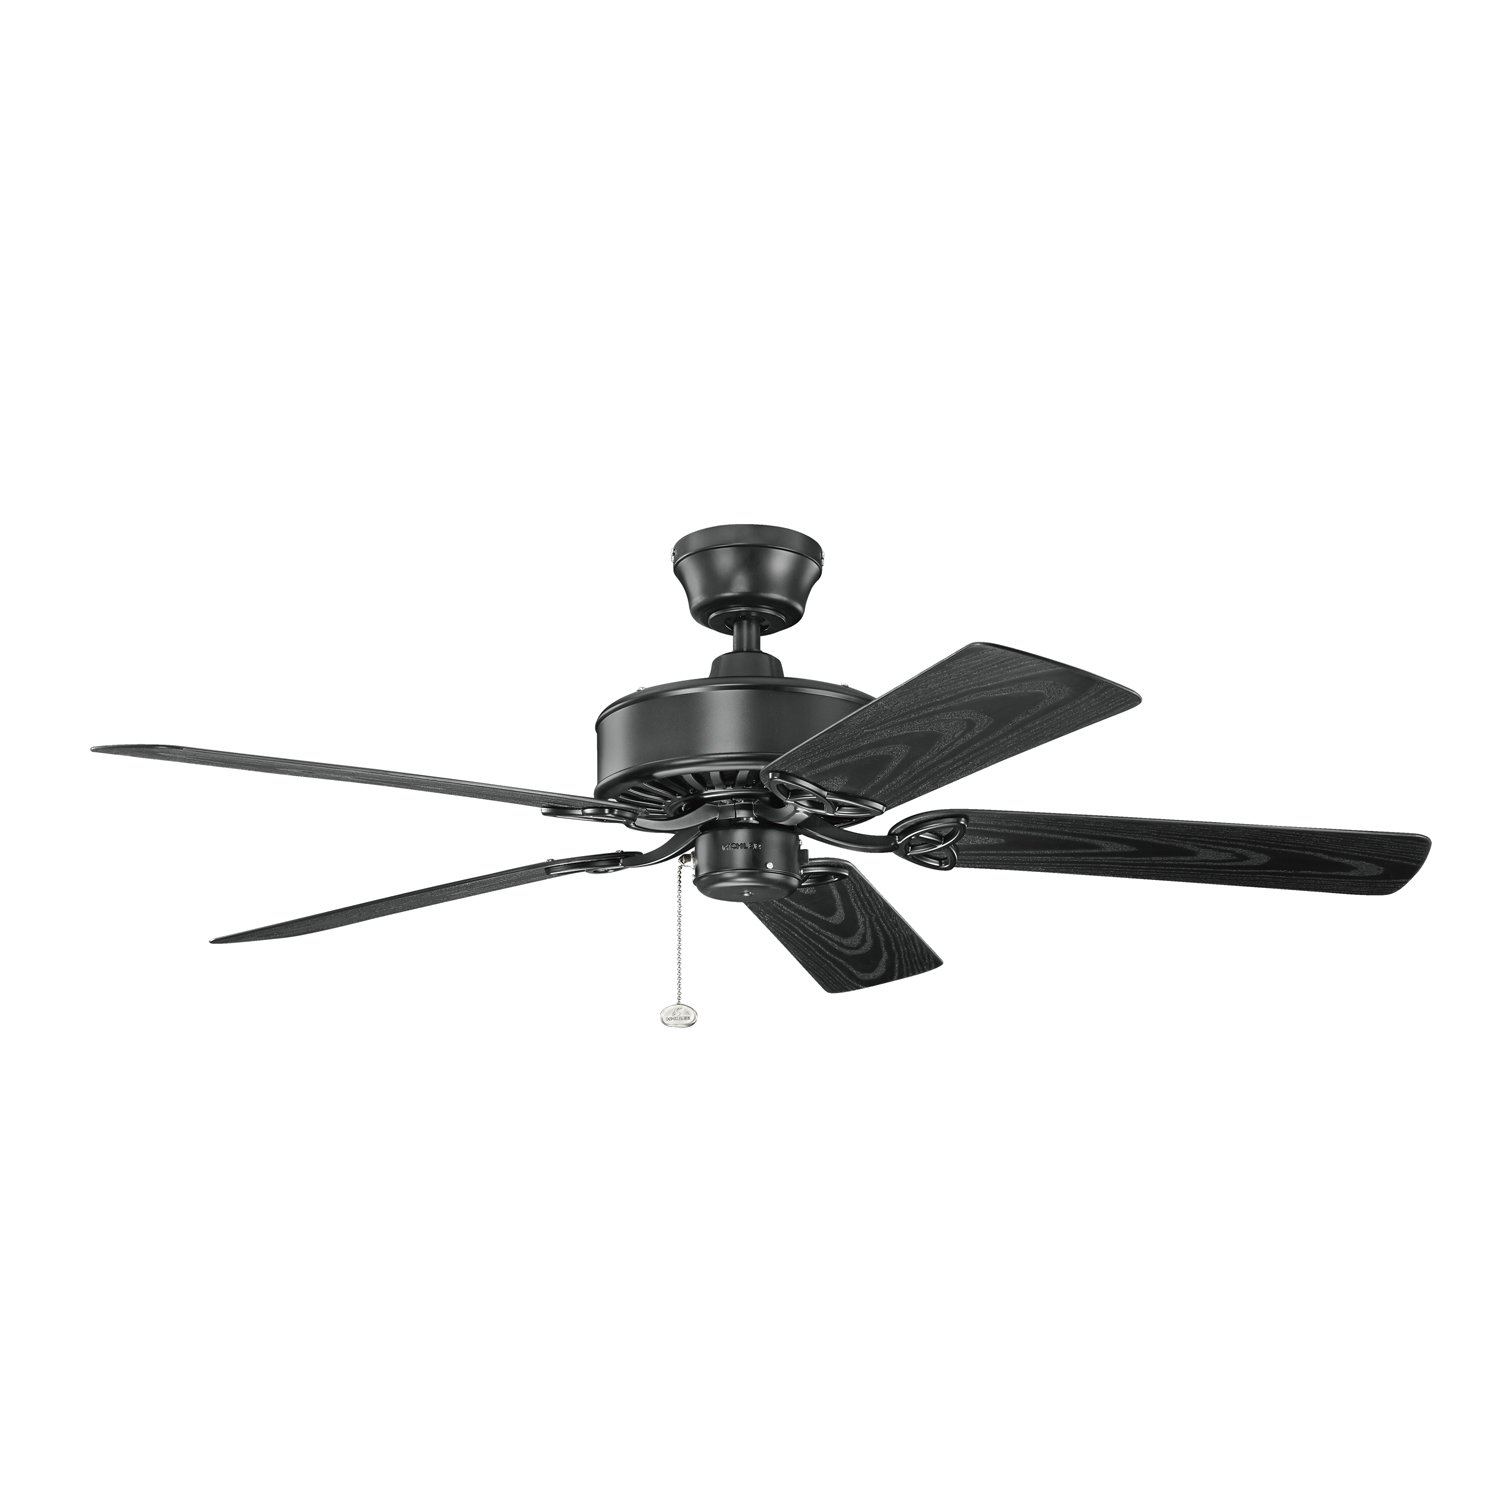 Kichler TZP 52 Ceiling Fan Amazon